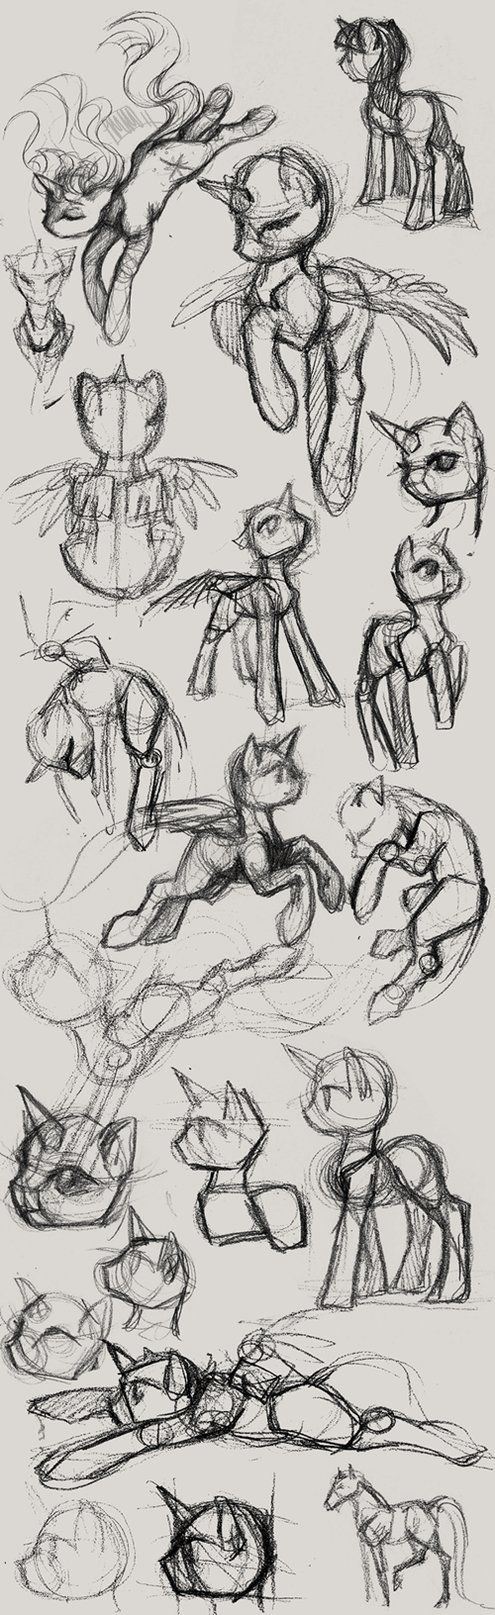 pencil pony studies by CosmicUnicorn on deviantART